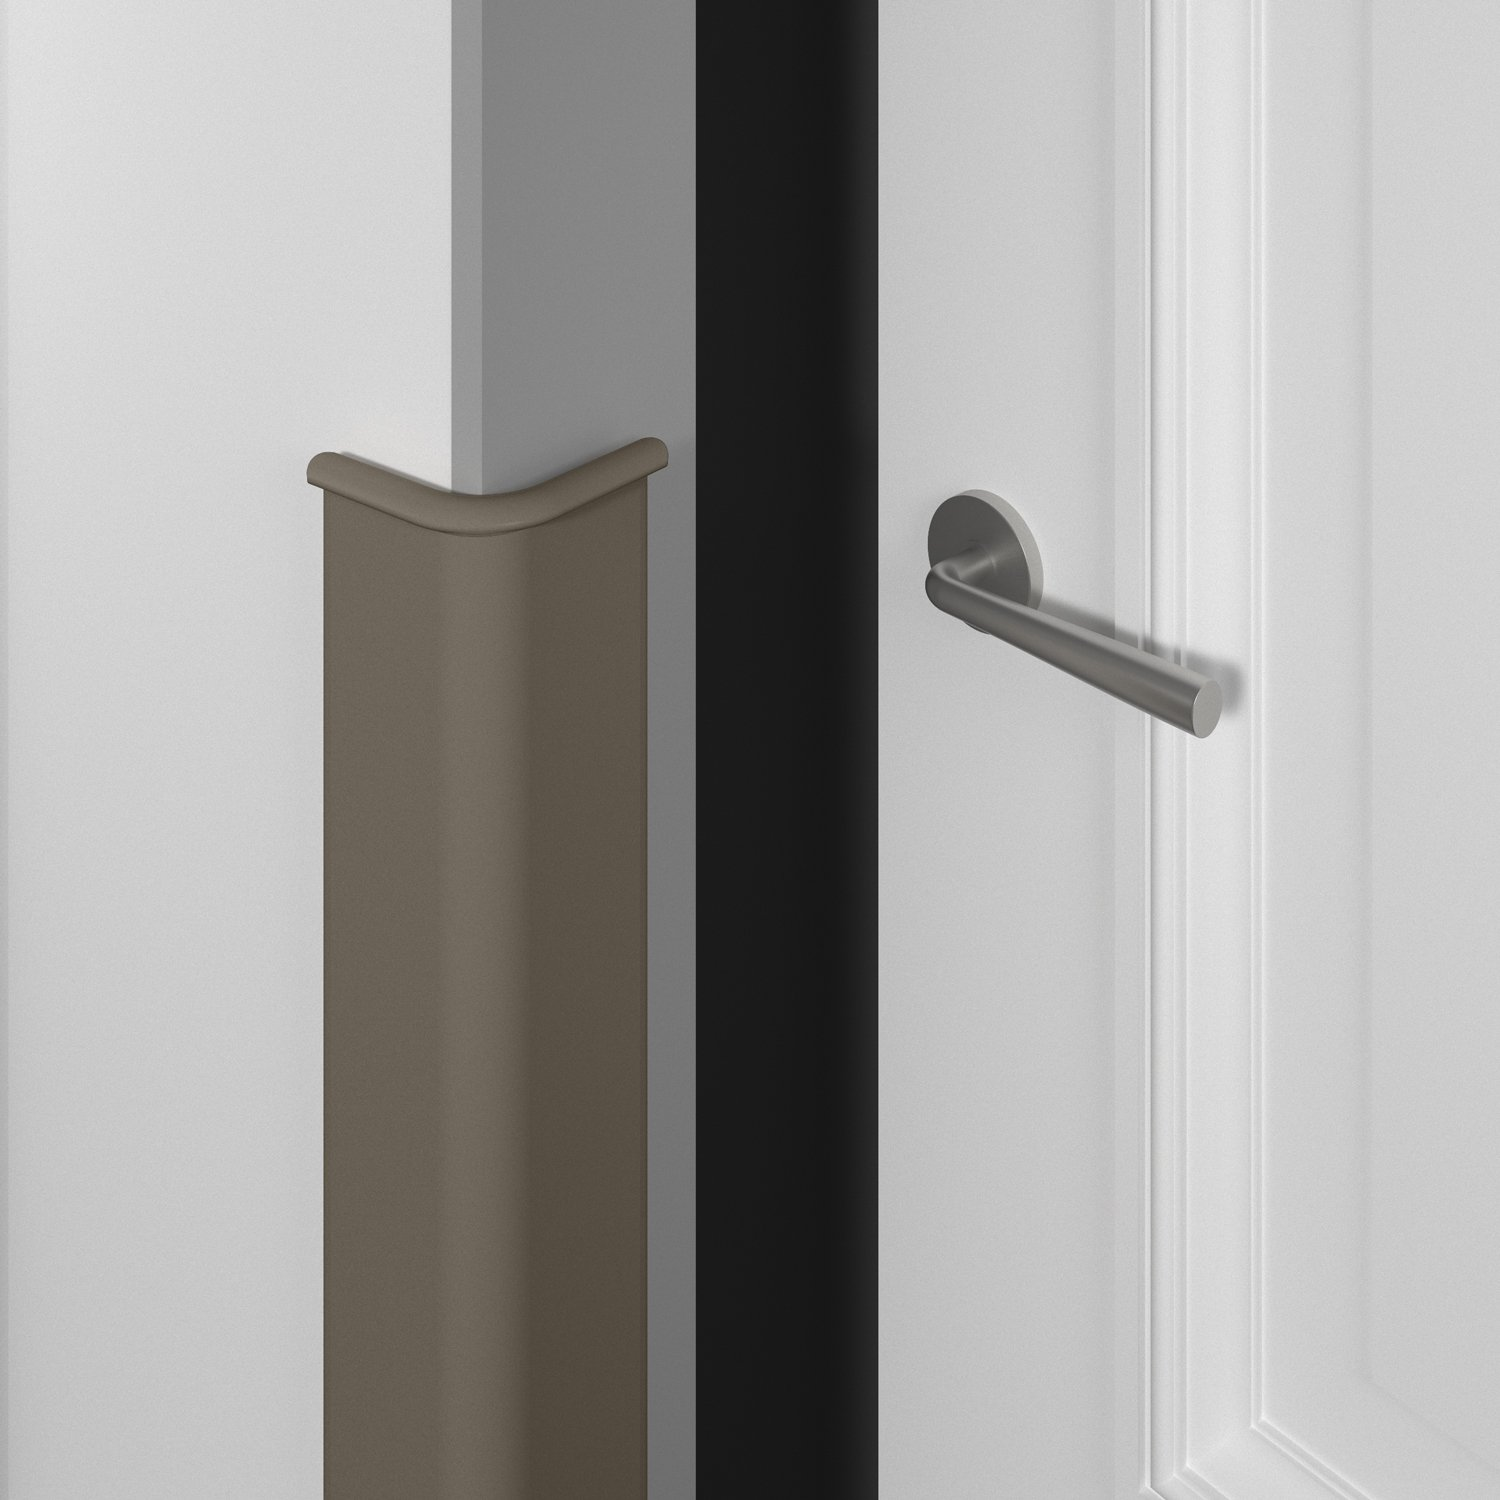 1700 door frame guard in shiprock gray